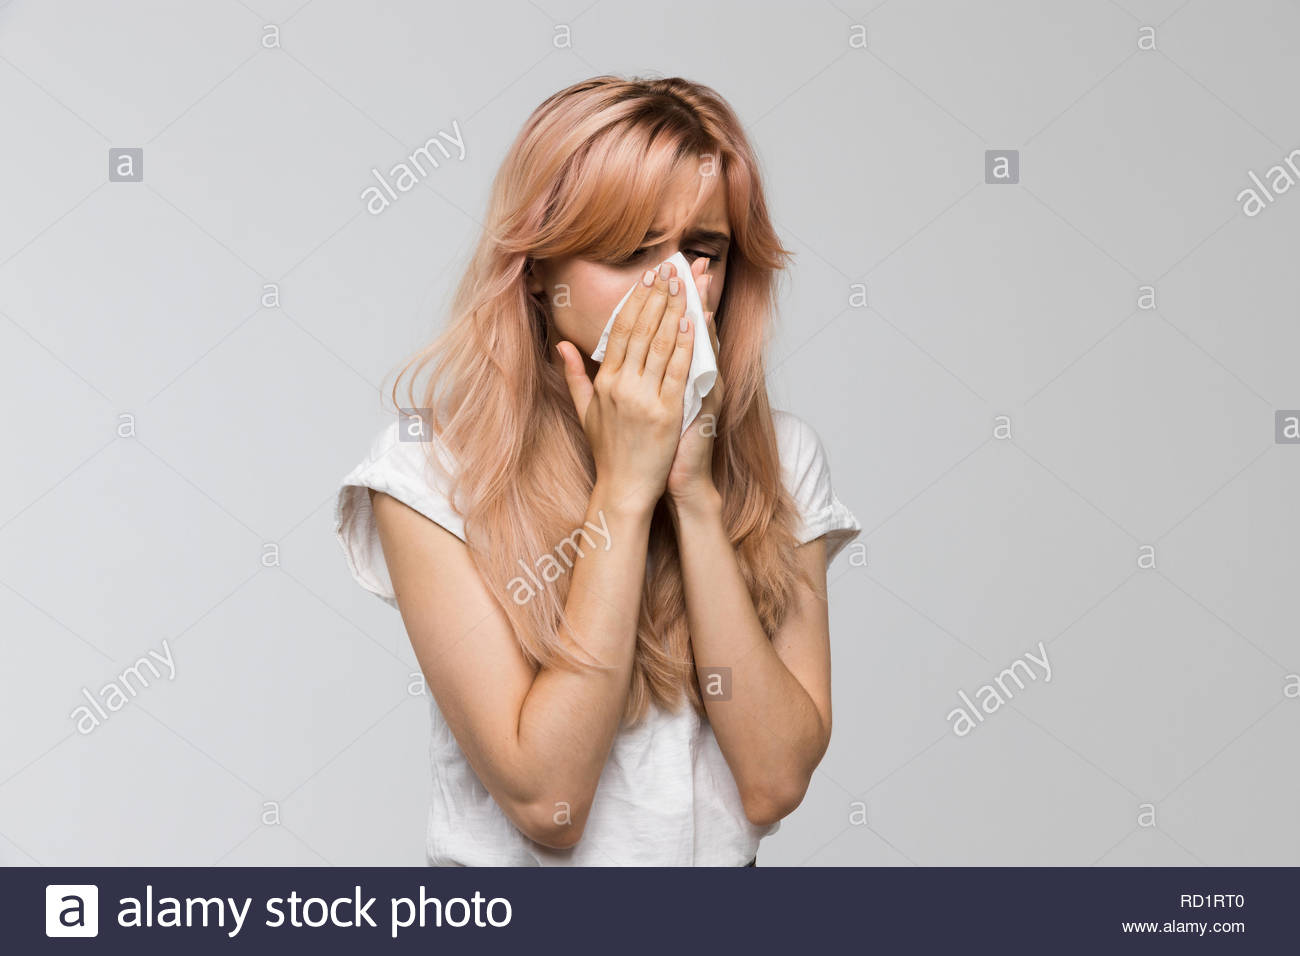 Portrait of young beautiful woman blowing her nose into a paper napkin, closed eyes/sneezing, allergy symptoms, flu, rhinitis, cold, sickness. - Stock Image